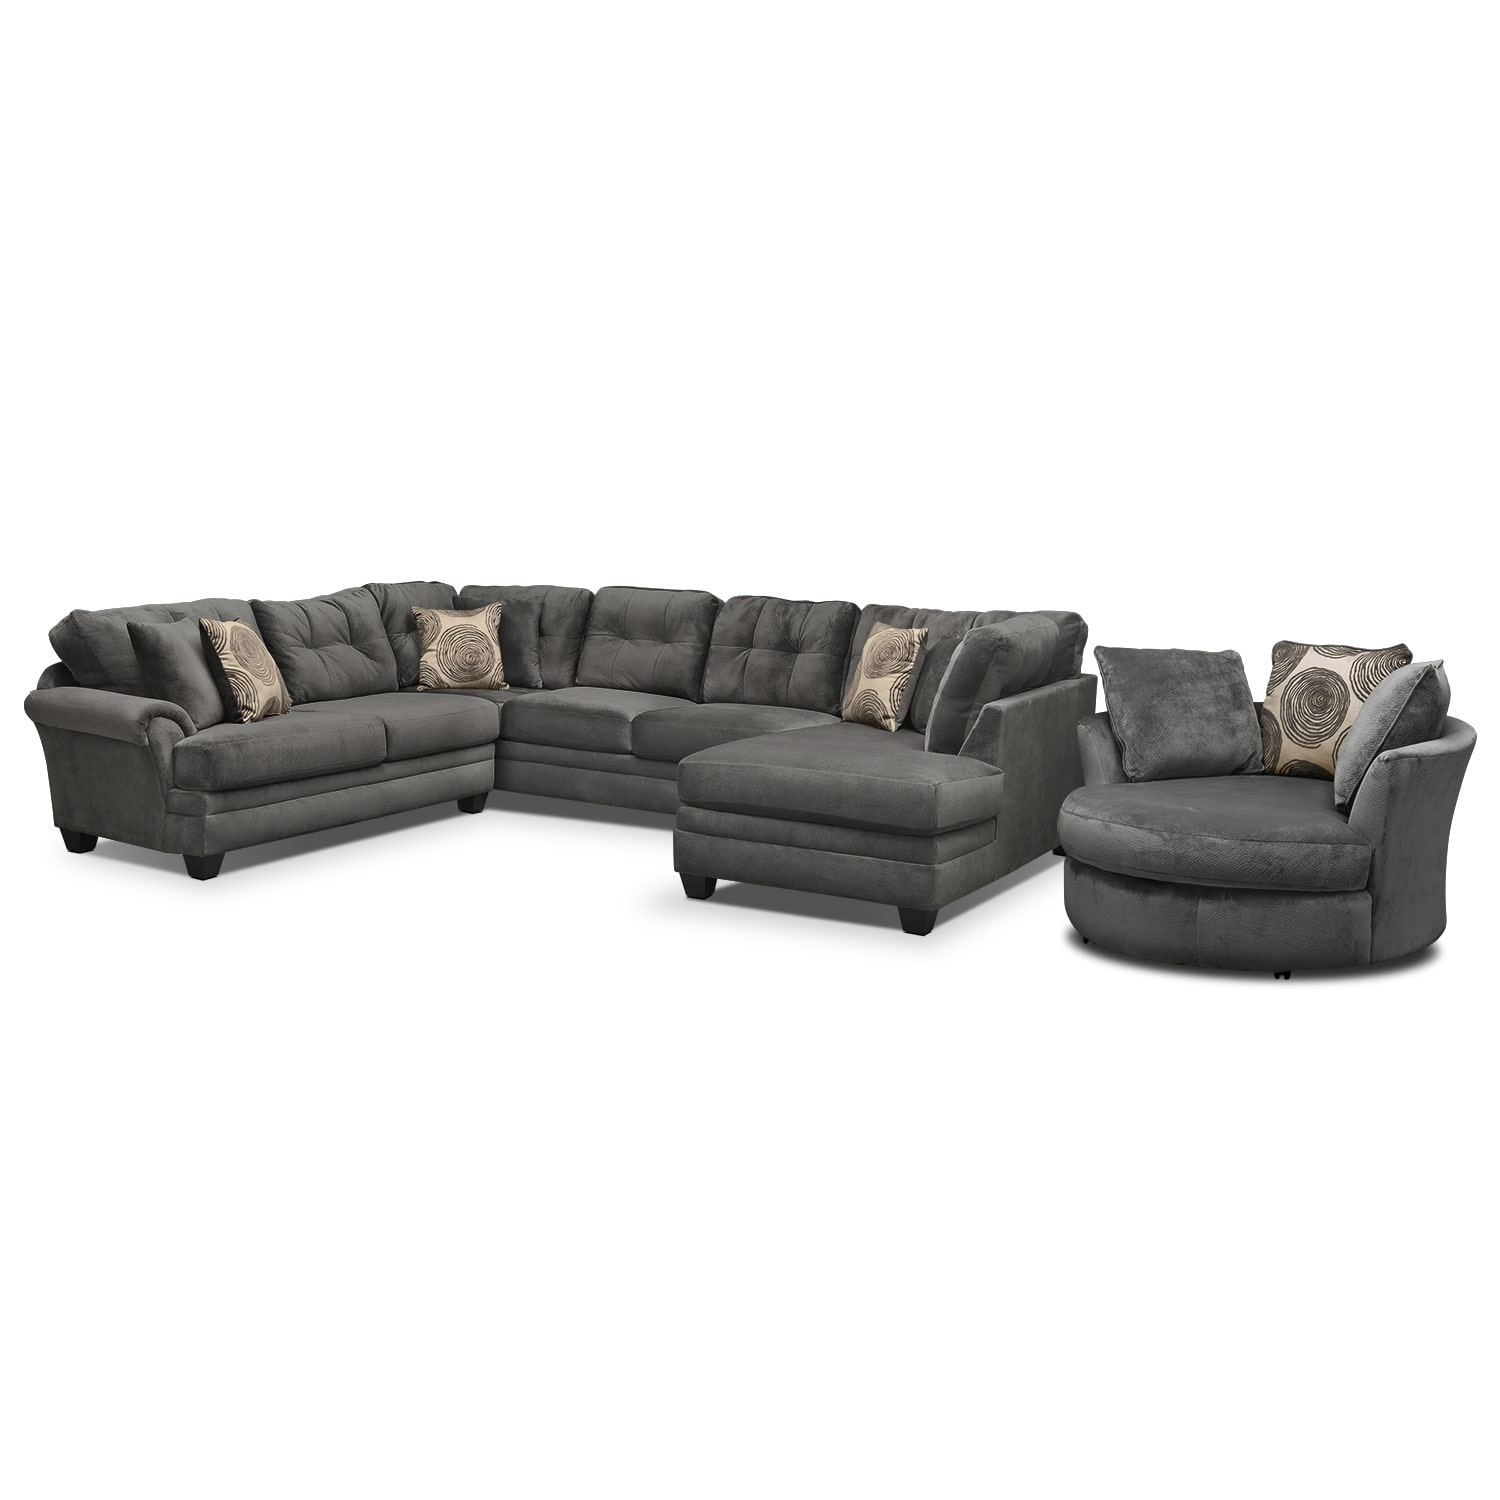 swivel chair sofa set hammock stand indoor cordelle 3 piece sectional with right facing chaise and living room furniture